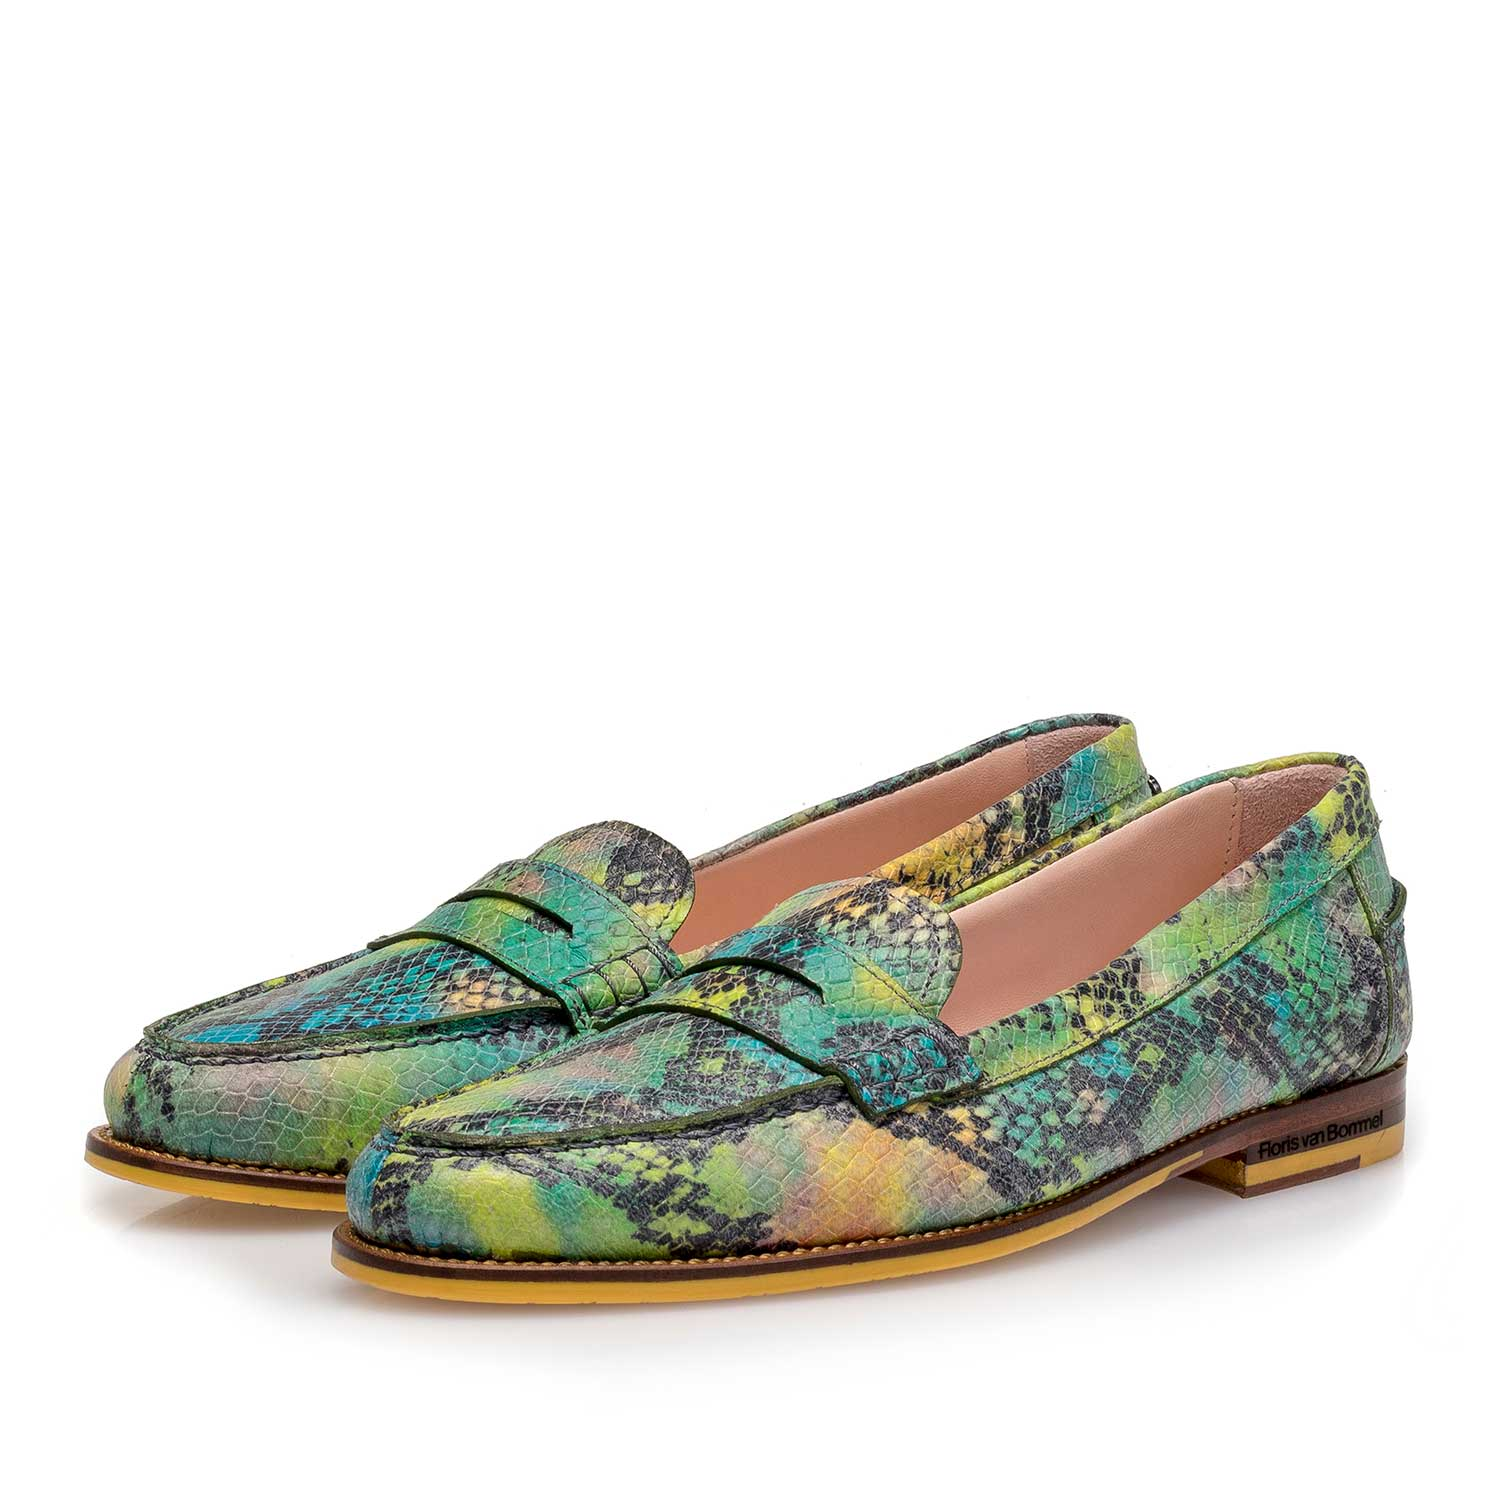 85409/12 - Green snake print leather loafer